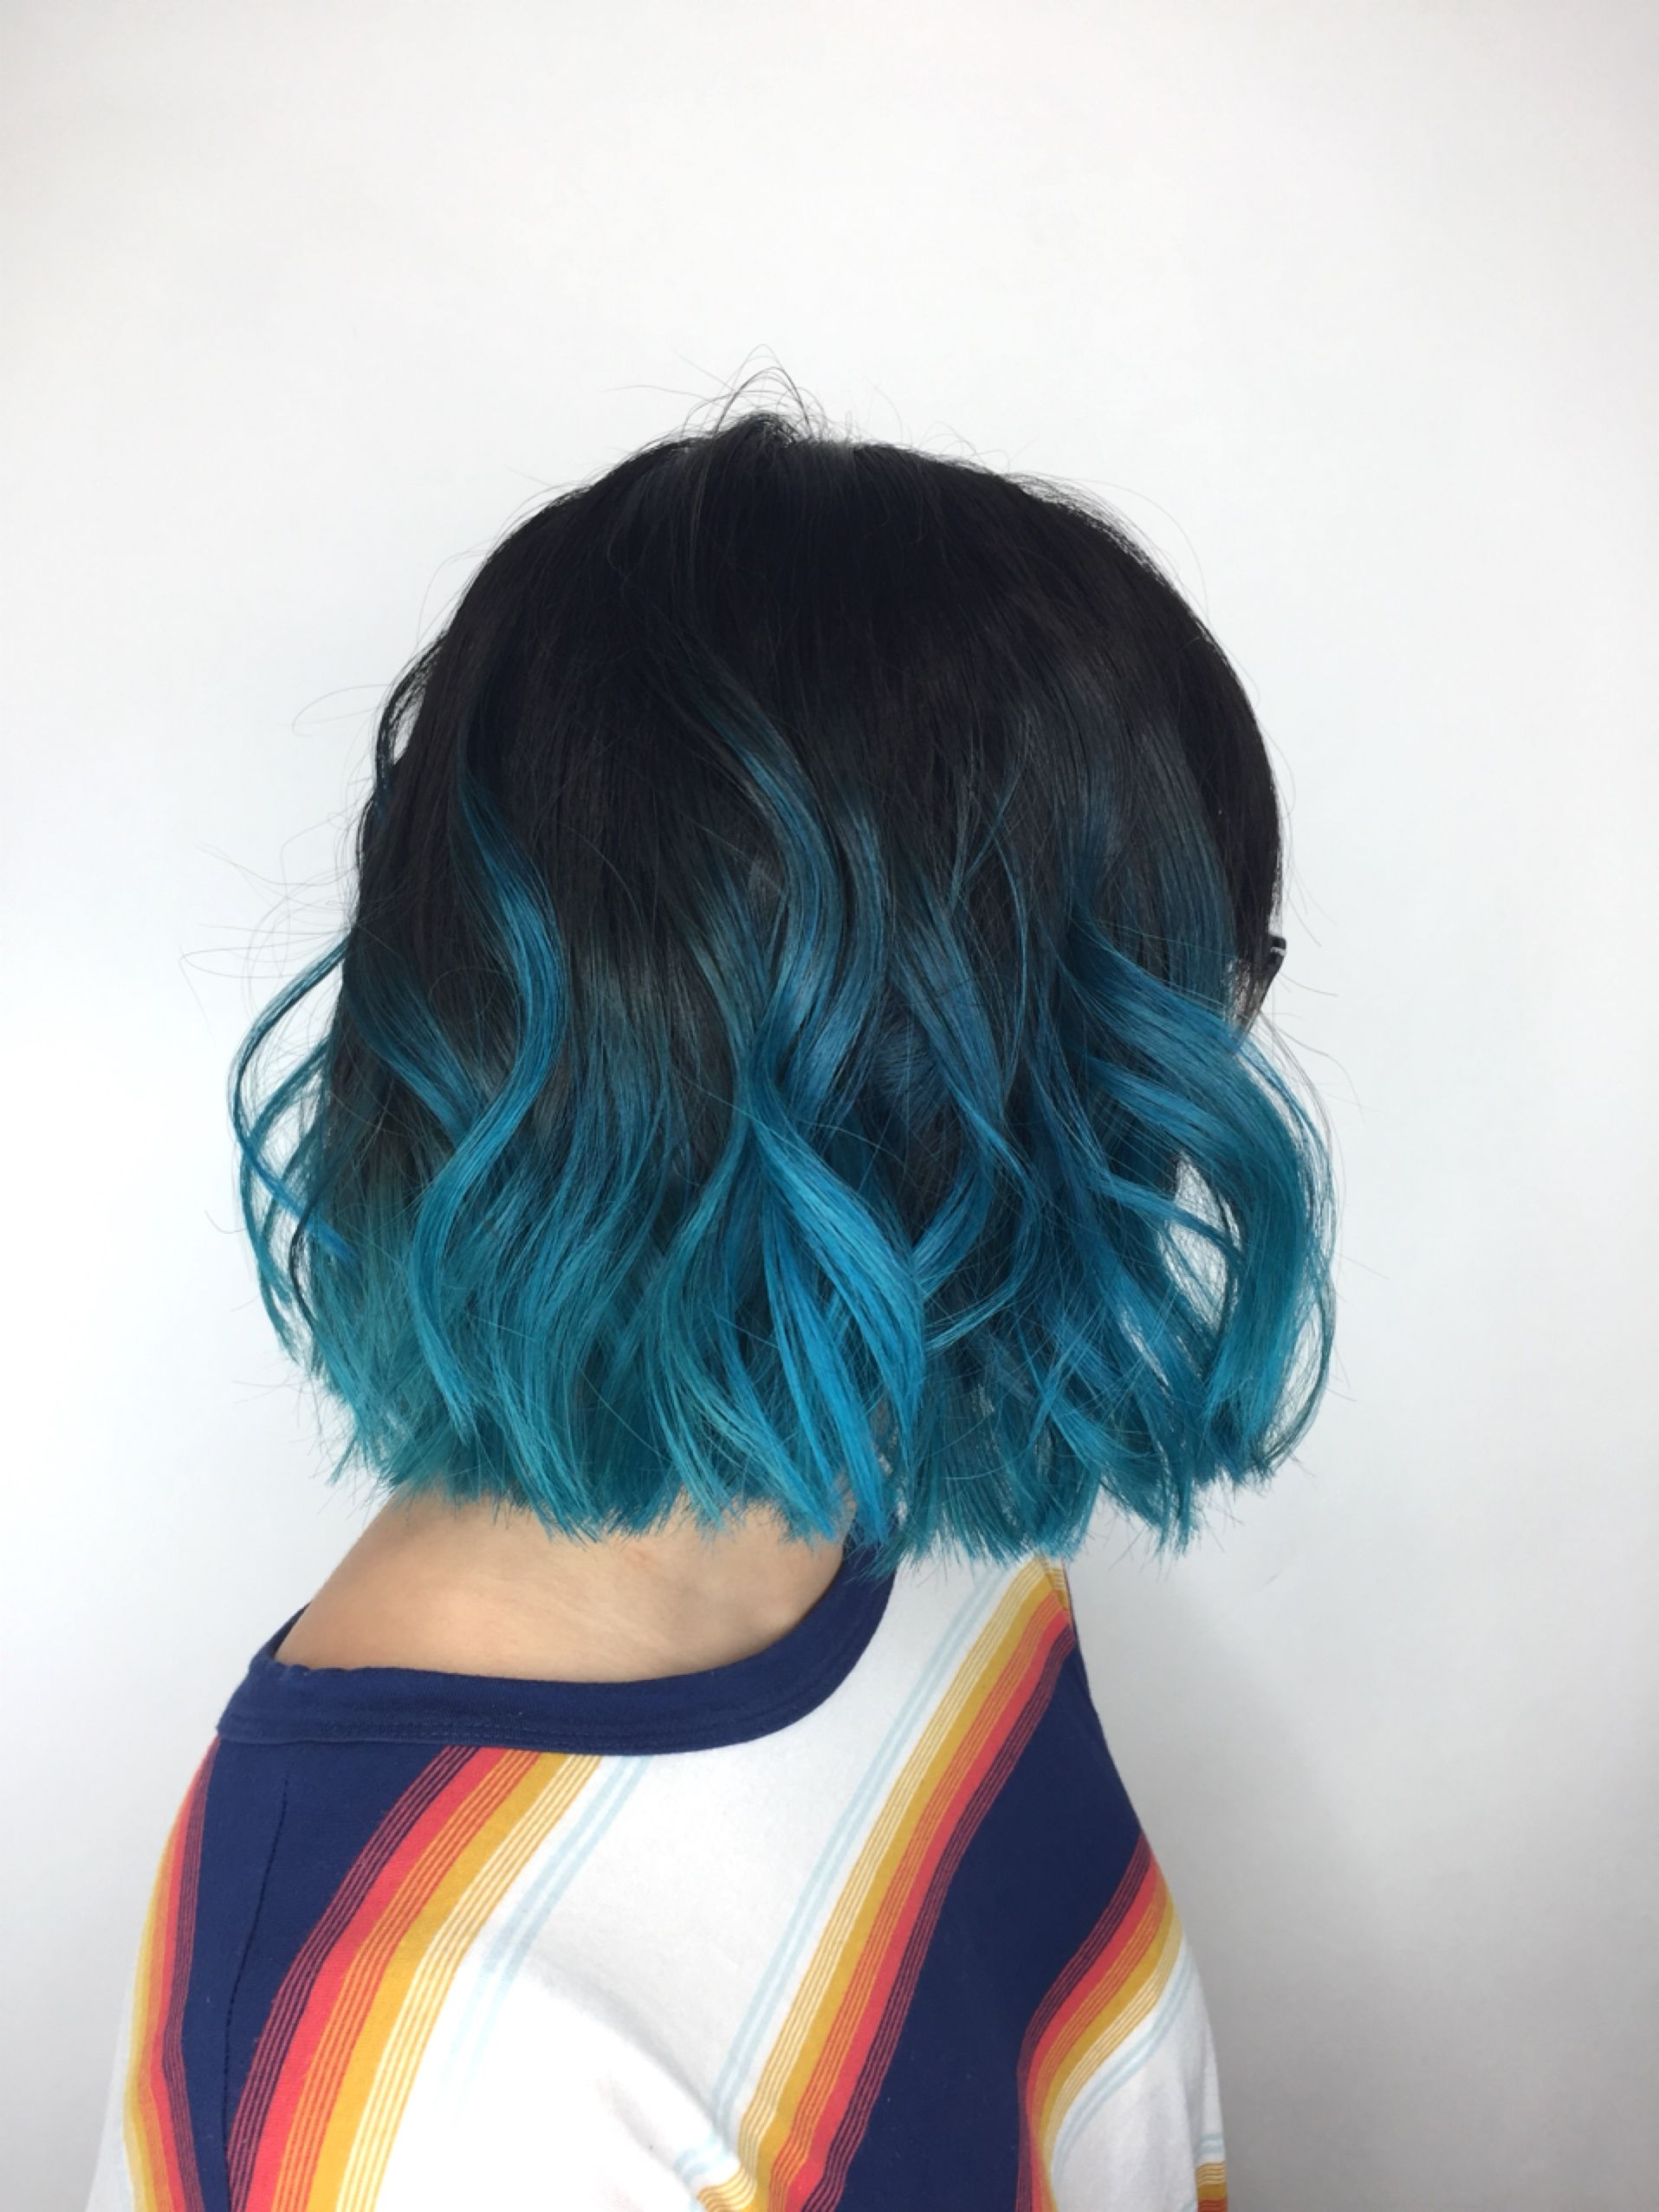 gonna miss my blue hair @thebooksbuzz | hair ideas in 2019